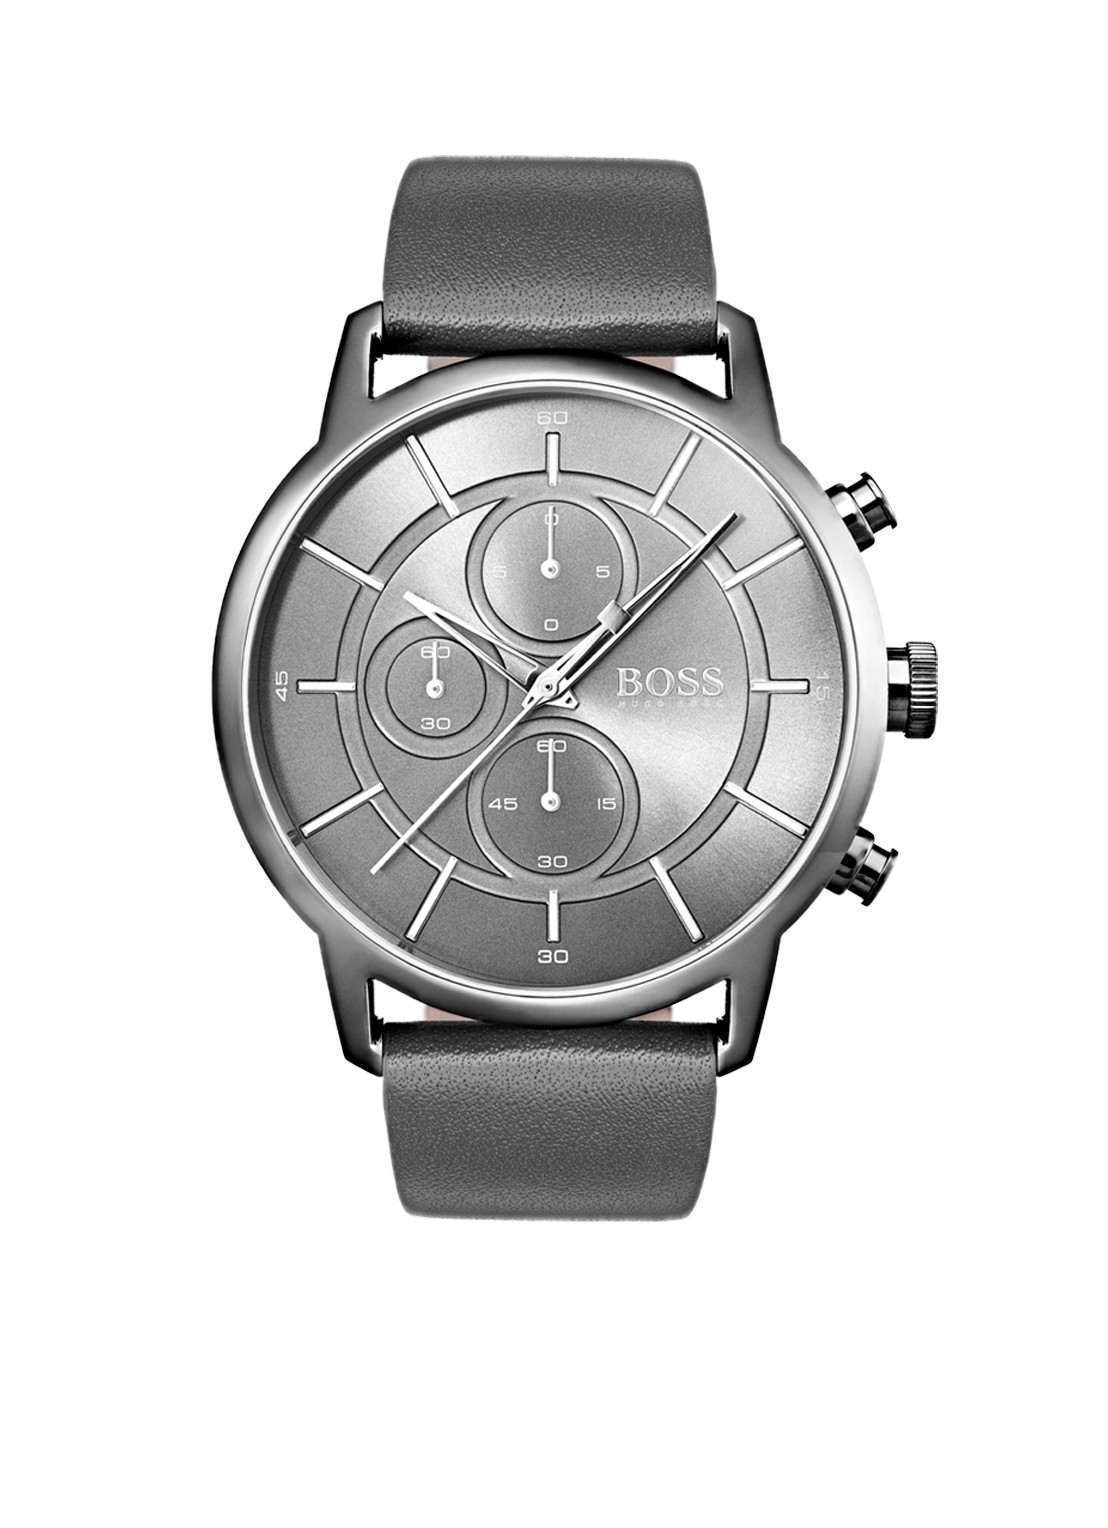 Hugo Boss HB1513570 Architectural Herenhorloge 44 mm